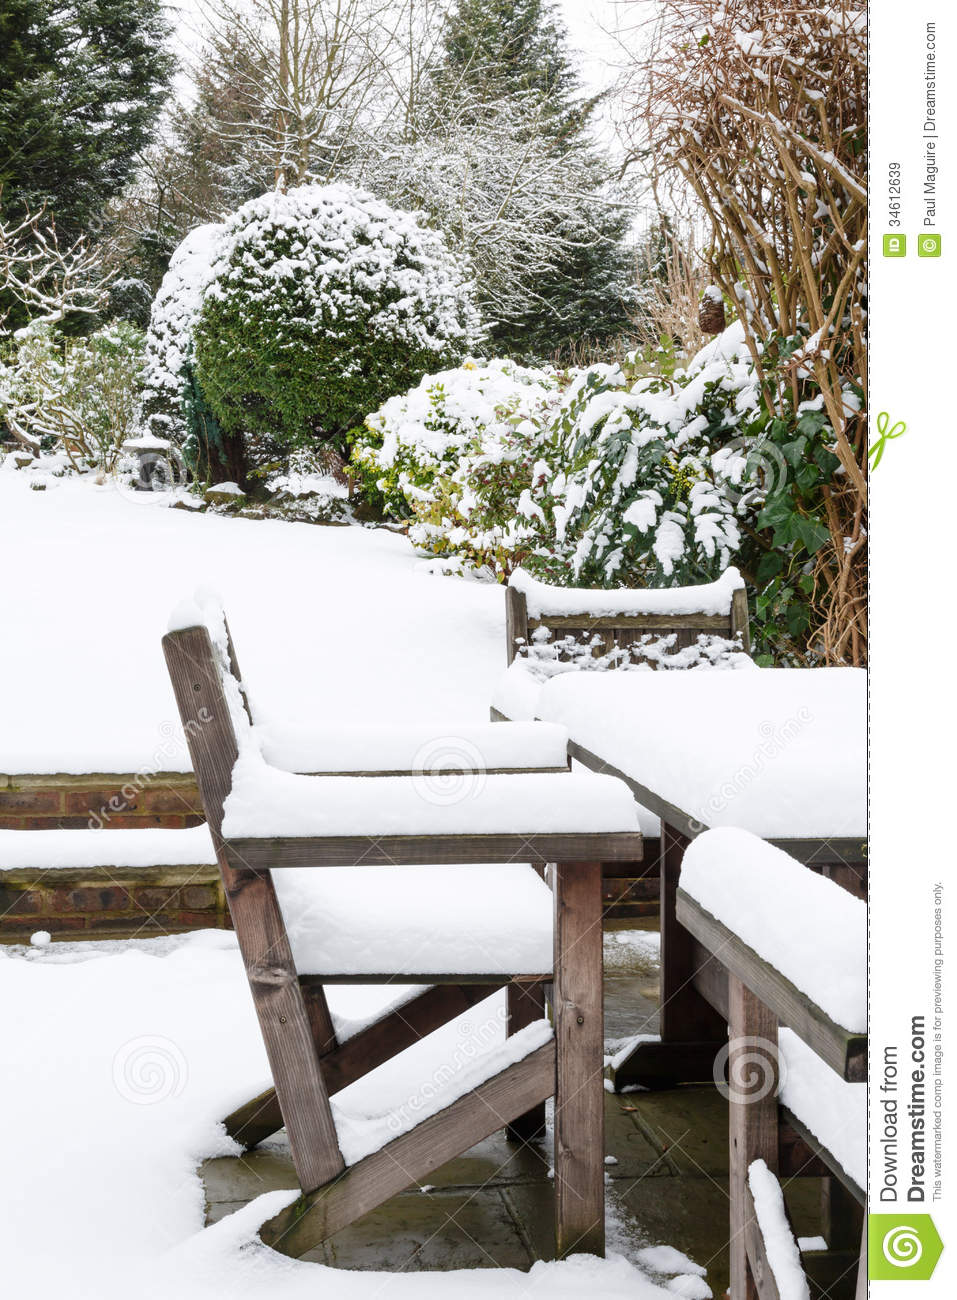 Garden Furniture Under Snow Royalty Free Stock Images